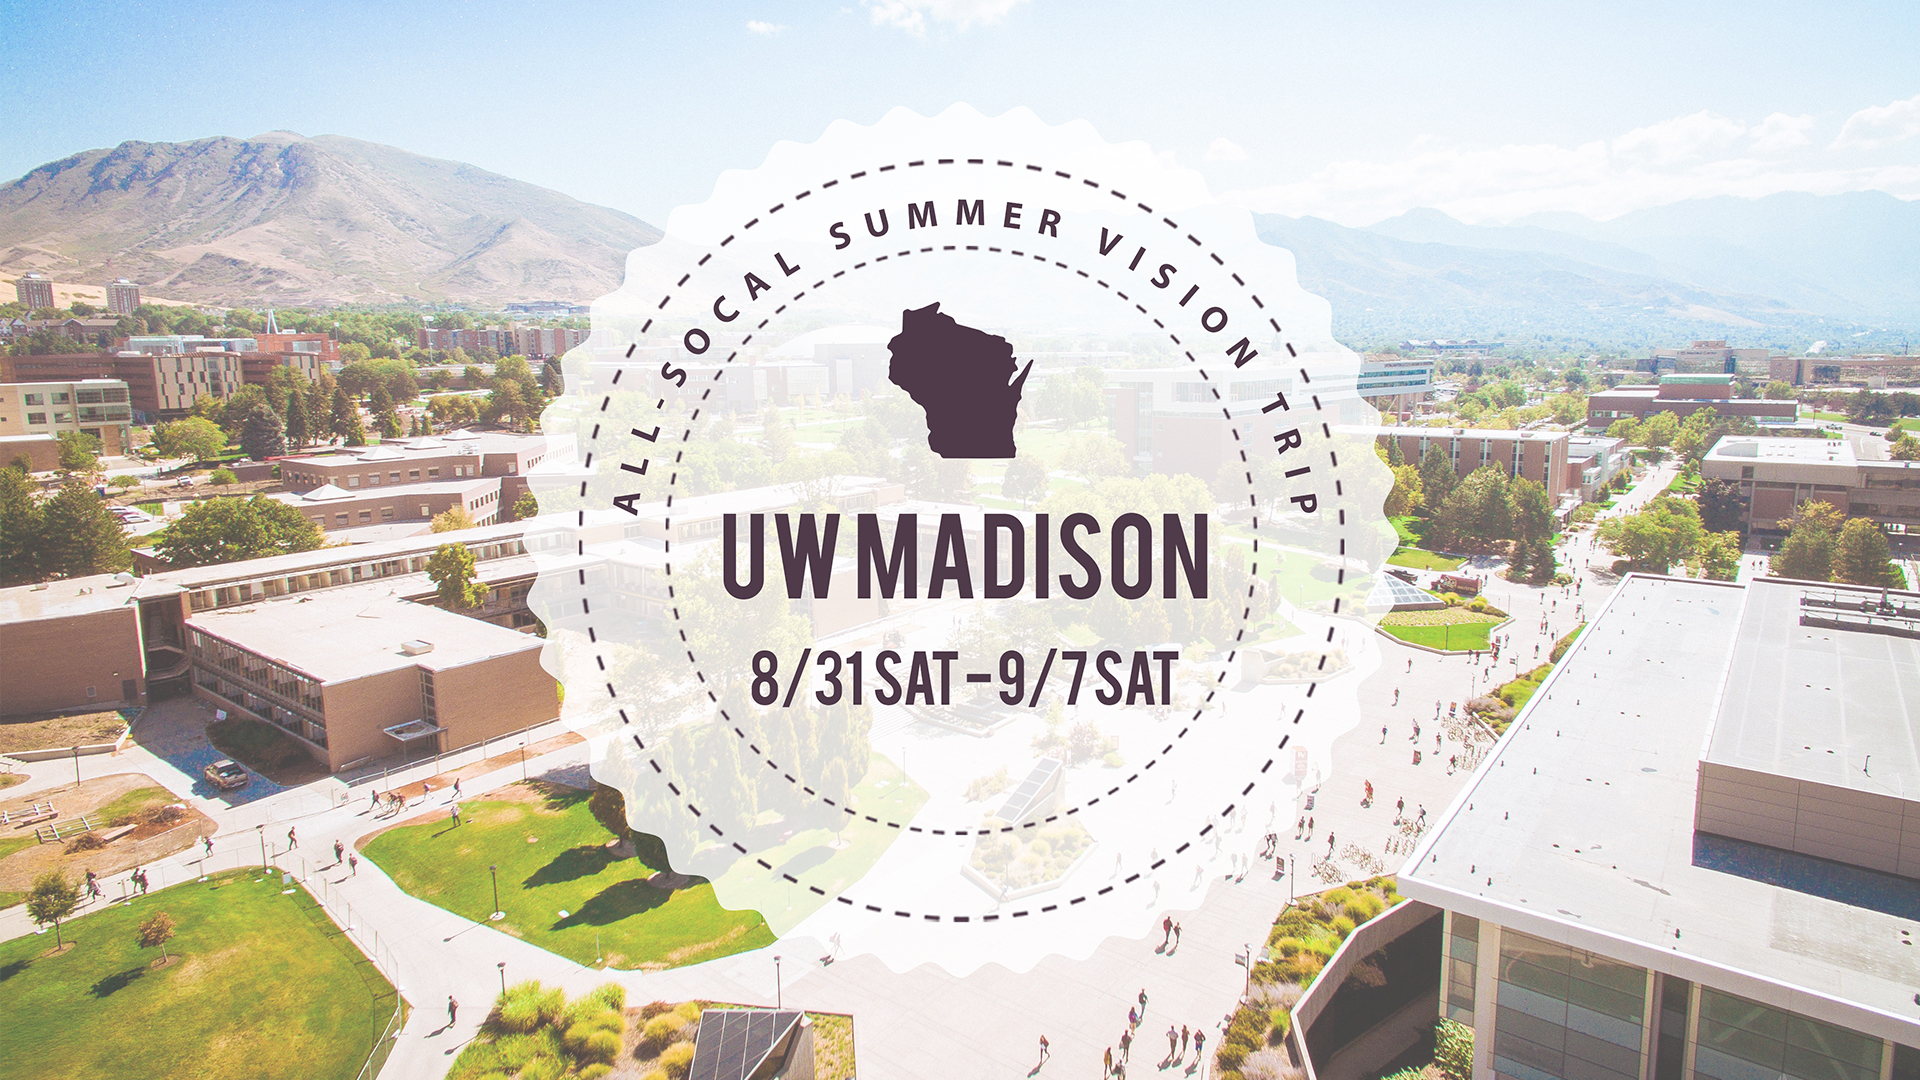 Are you interested in going on a vision trip to the University of Wisconsin - Madison during their welcome week to do some outreach? Let's see what the response on the campus is like! Sign up   HERE  .   Trip dates: Sat 8/31 - Sat 9/7 Freshman move-in day: Sat 8/31 First day of class: Wed 9/4